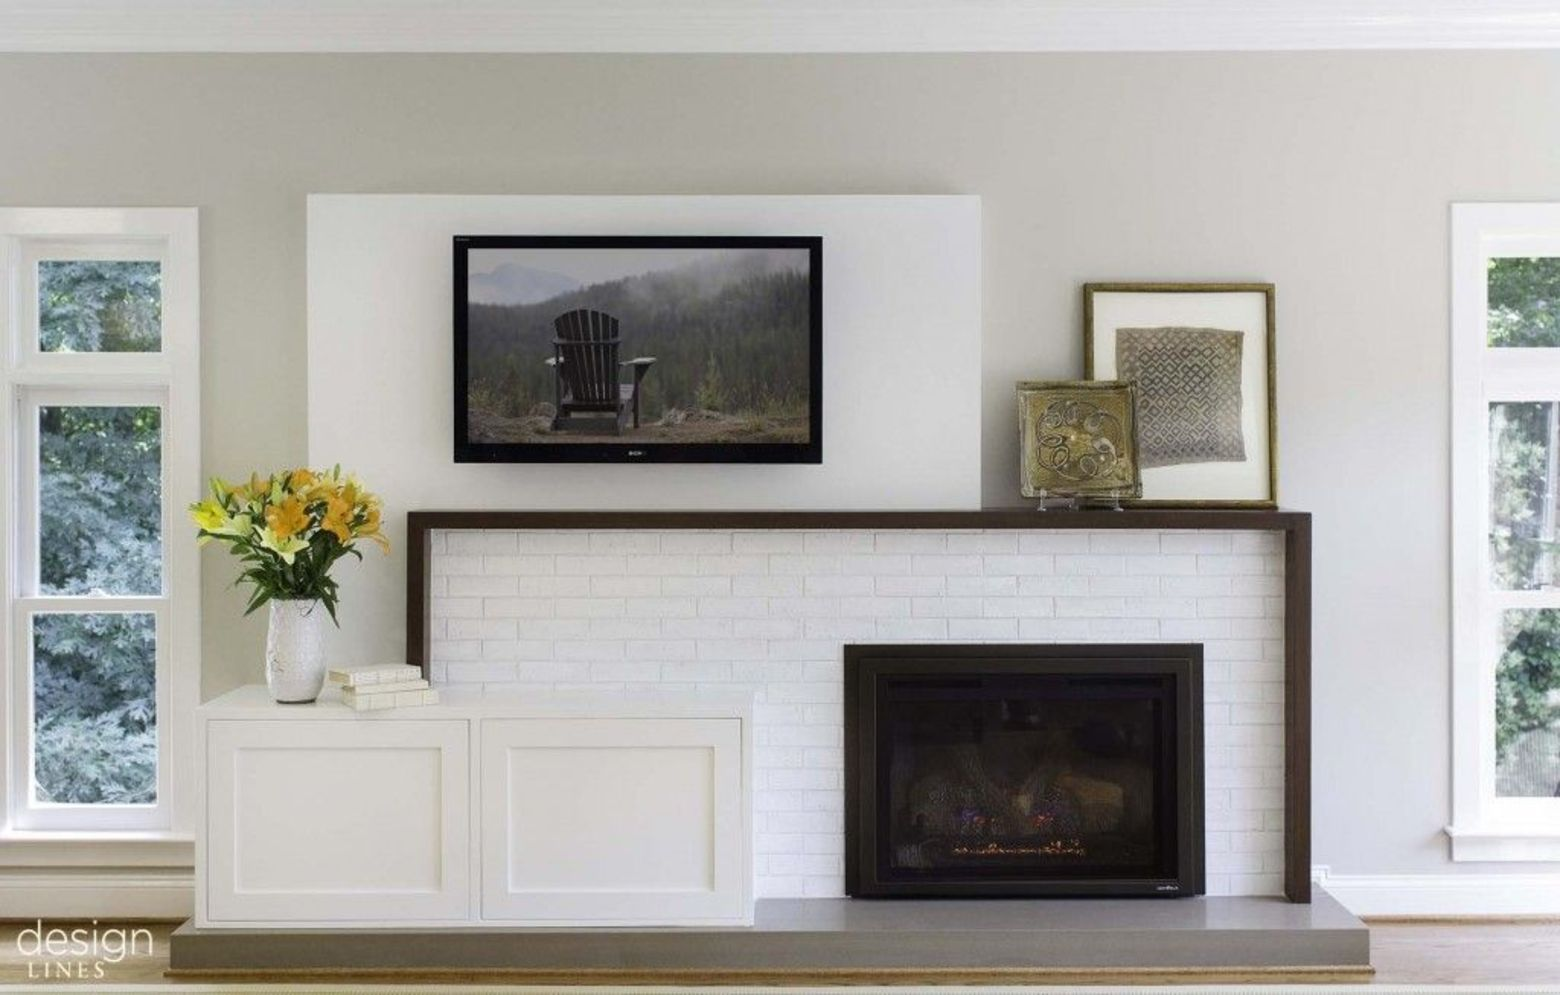 Amazing interior design showing enclosed log burning fireplace along with savvy TV wall Image 10